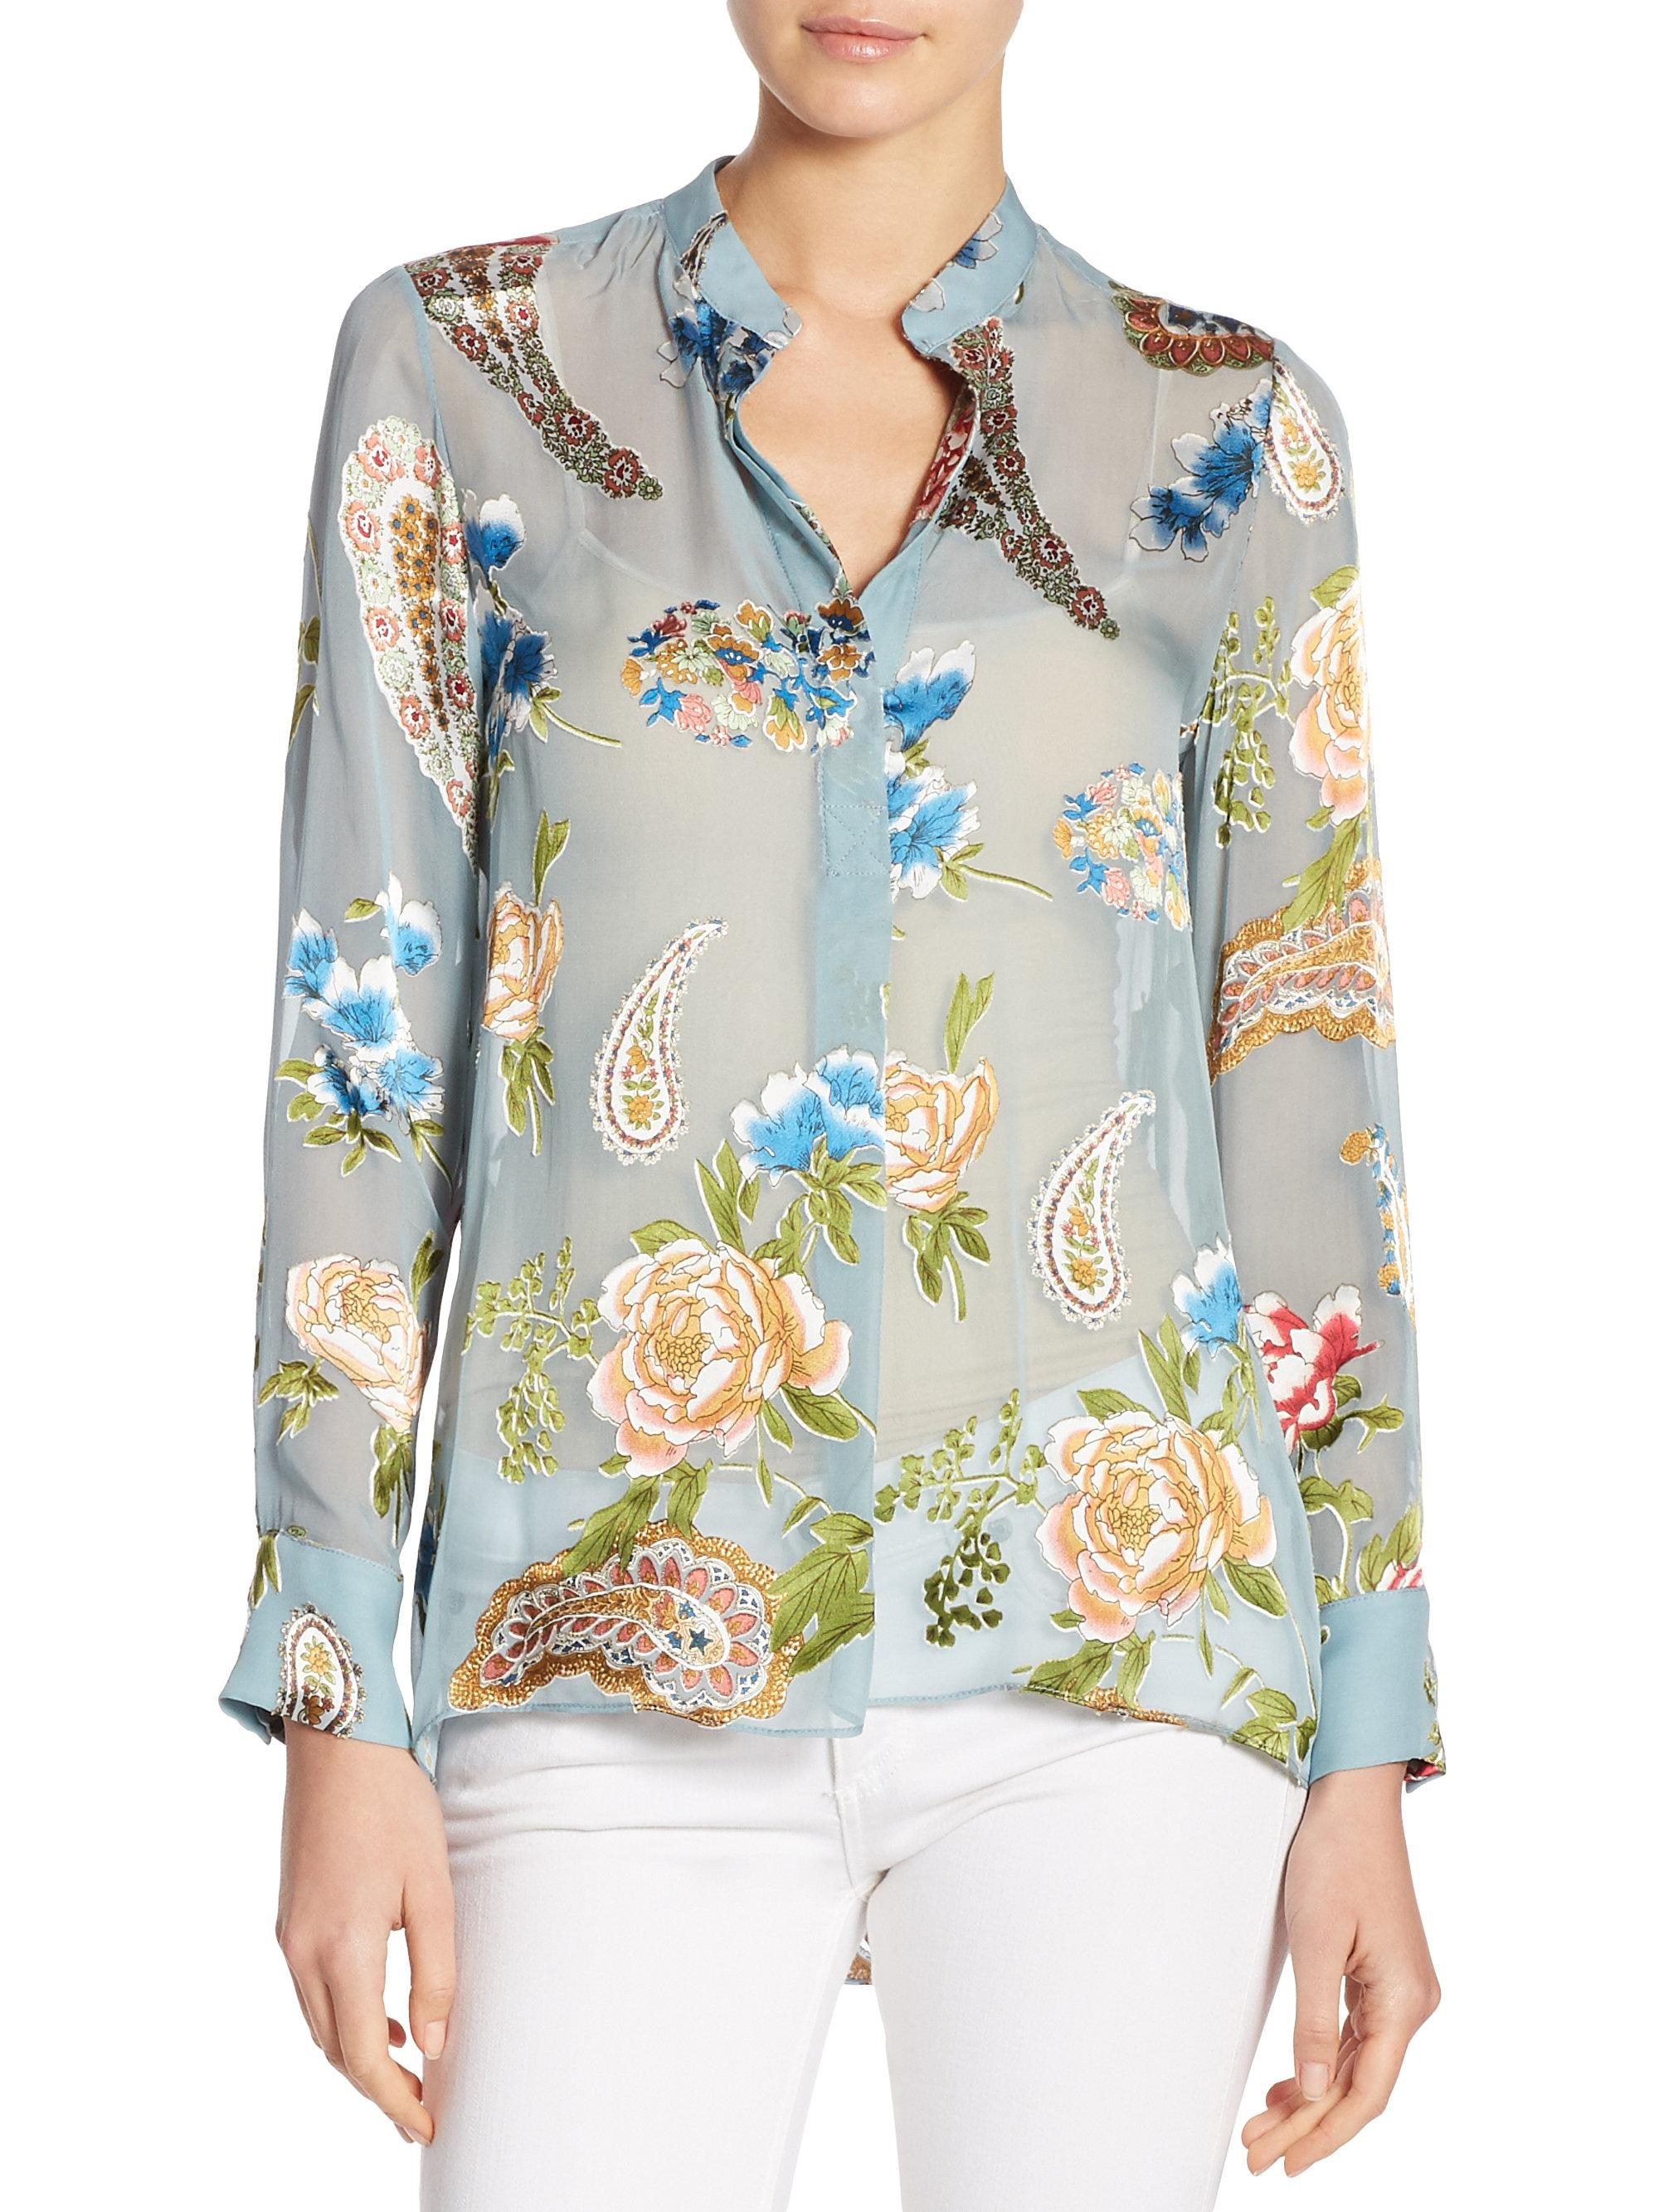 663f46c9c66 Alice + Olivia Amos Floral Tunic Top in Blue - Lyst